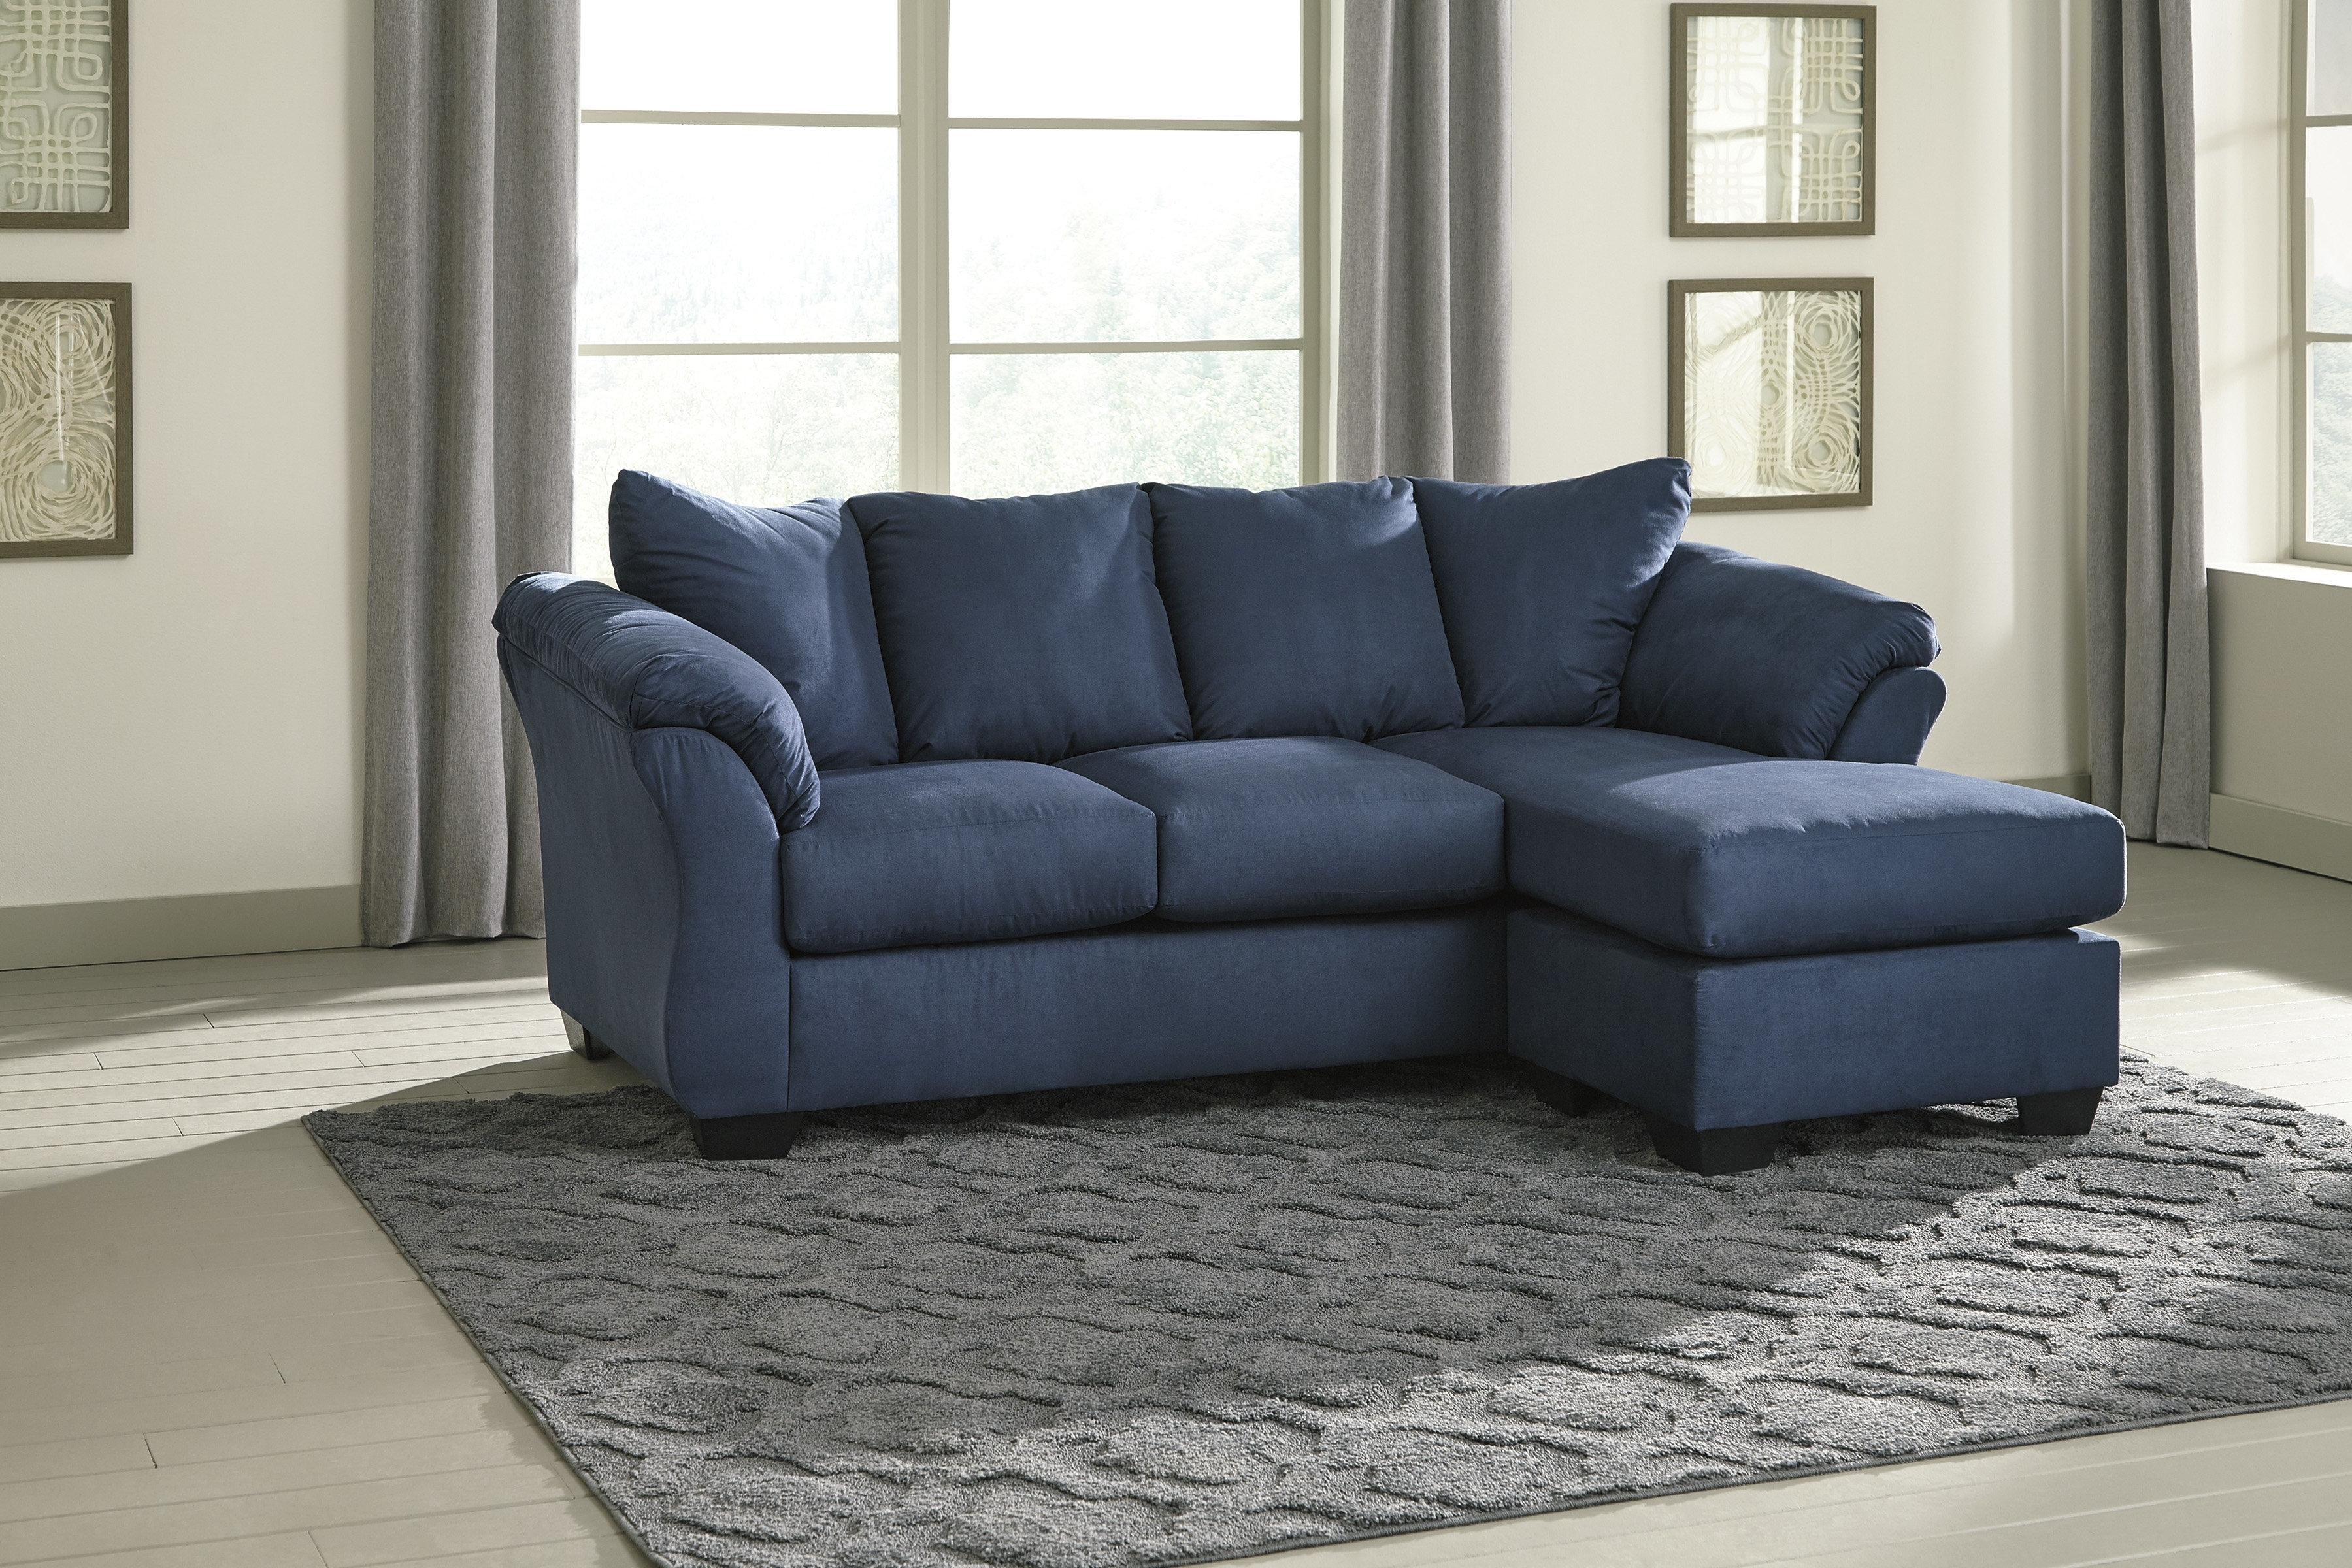 Alcott Hill Sagamore Reversible Sectional & Reviews | Wayfair within Lucy Grey 2 Piece Sleeper Sectionals With Laf Chaise (Image 1 of 30)